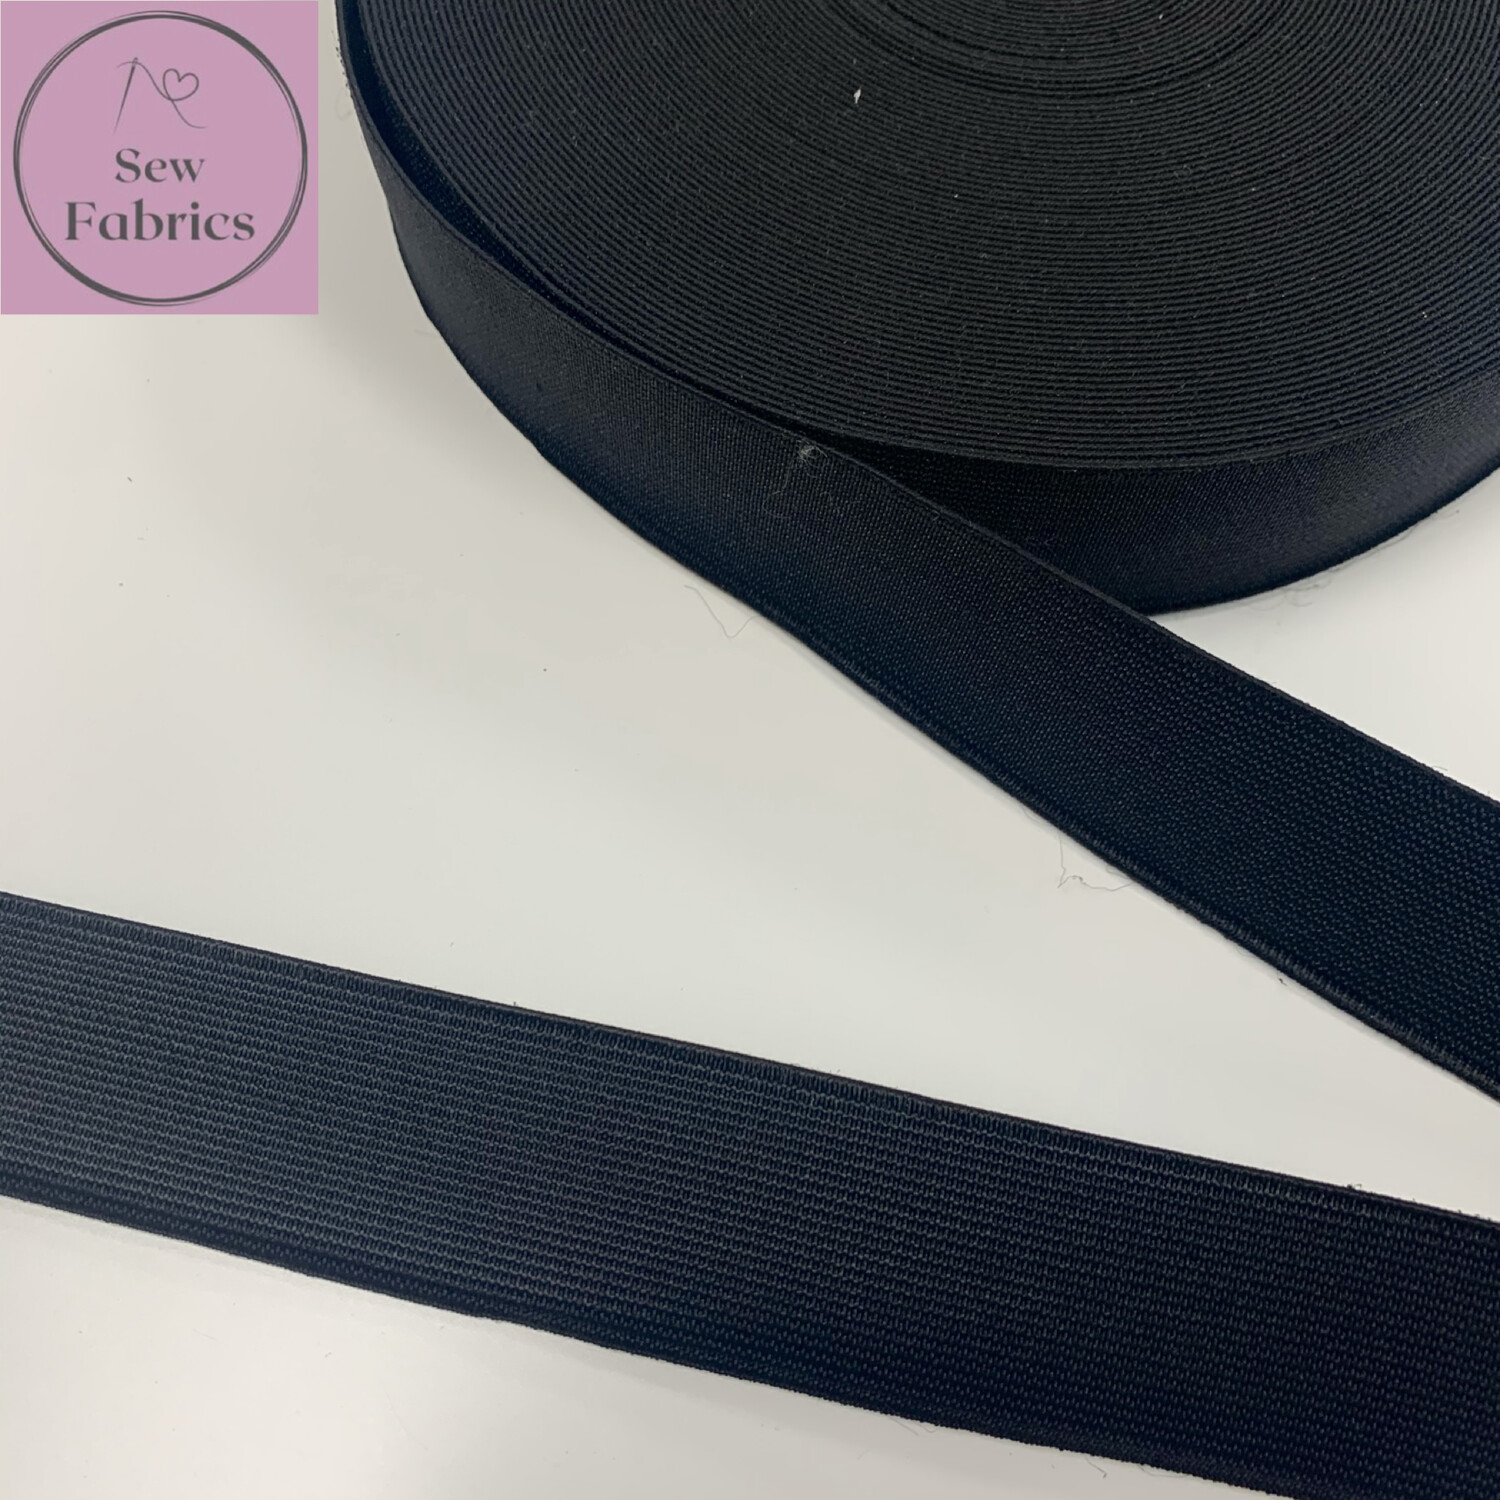 25mts roll of 32mm Black Woven Insert Waistband Cord Elastic